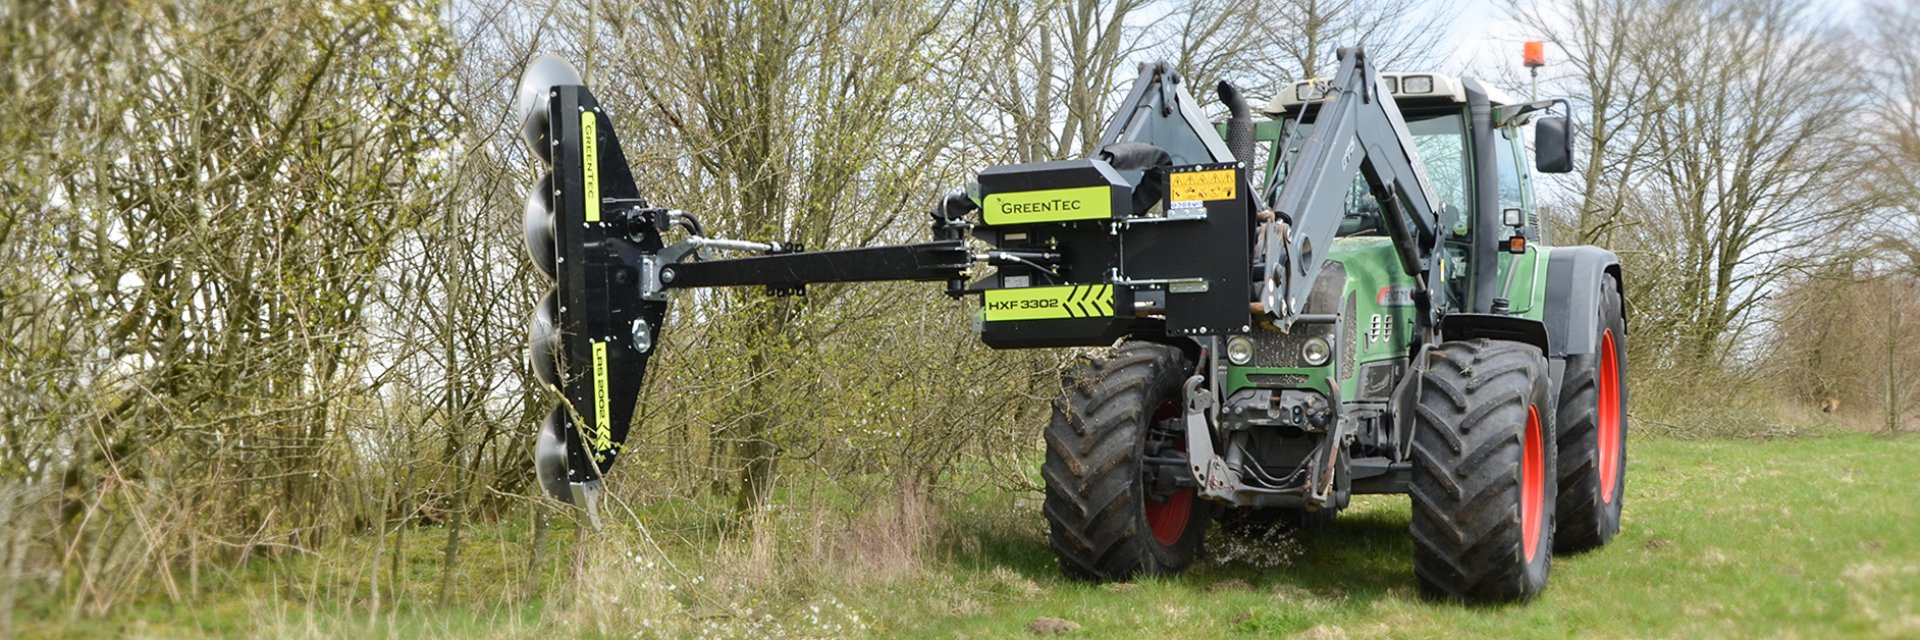 The attachment frame can be mounted on tractors and loaders, with focus on high capacity